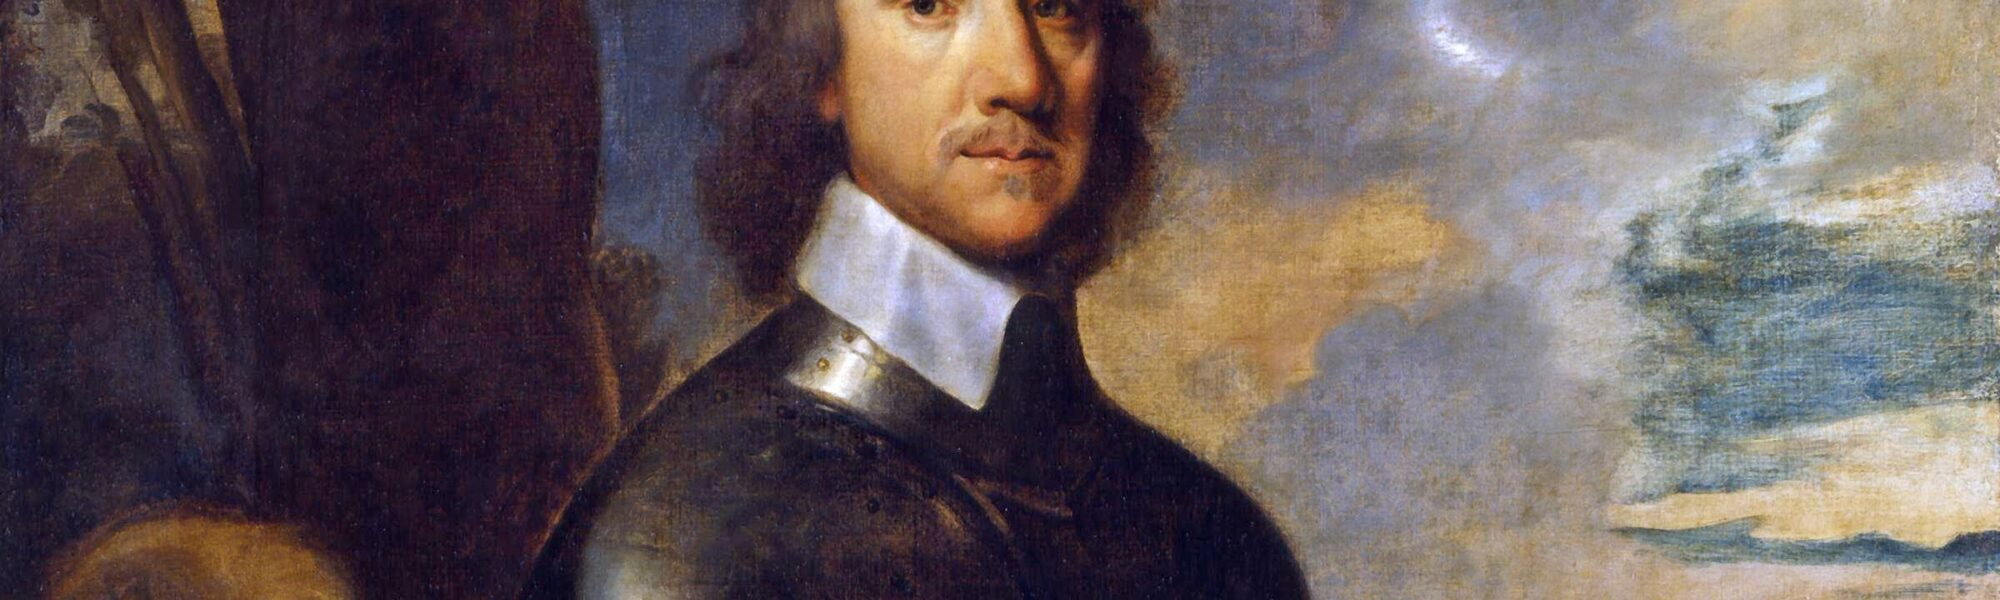 Oliver Cromwell - Domaine Public